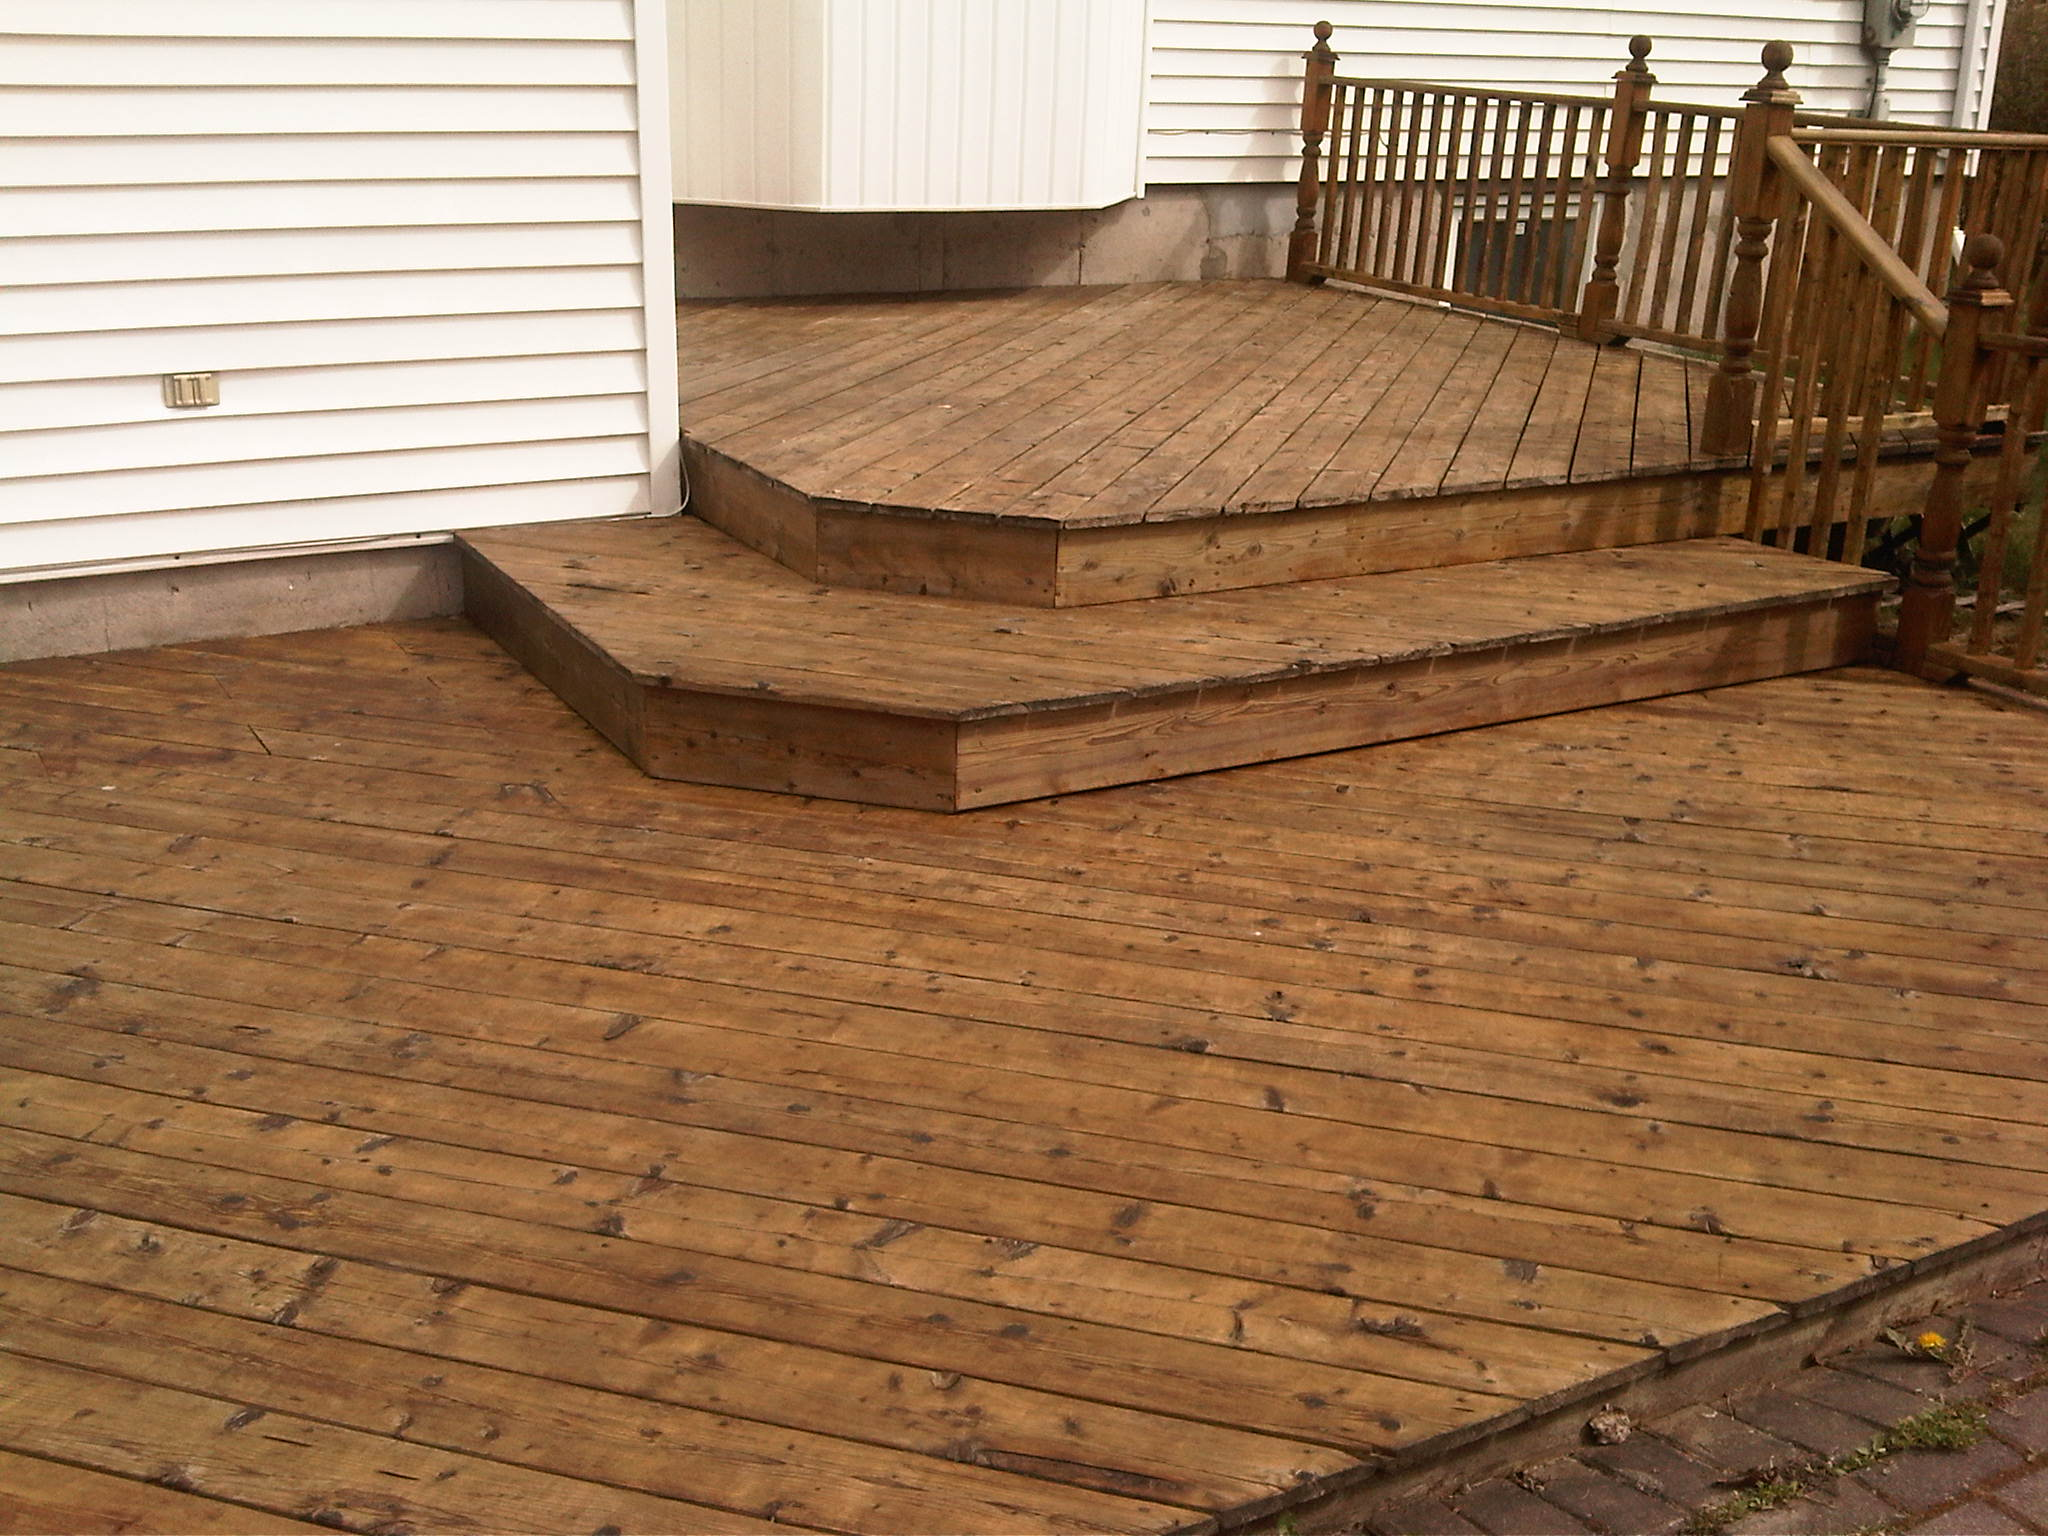 Deck Wash - After